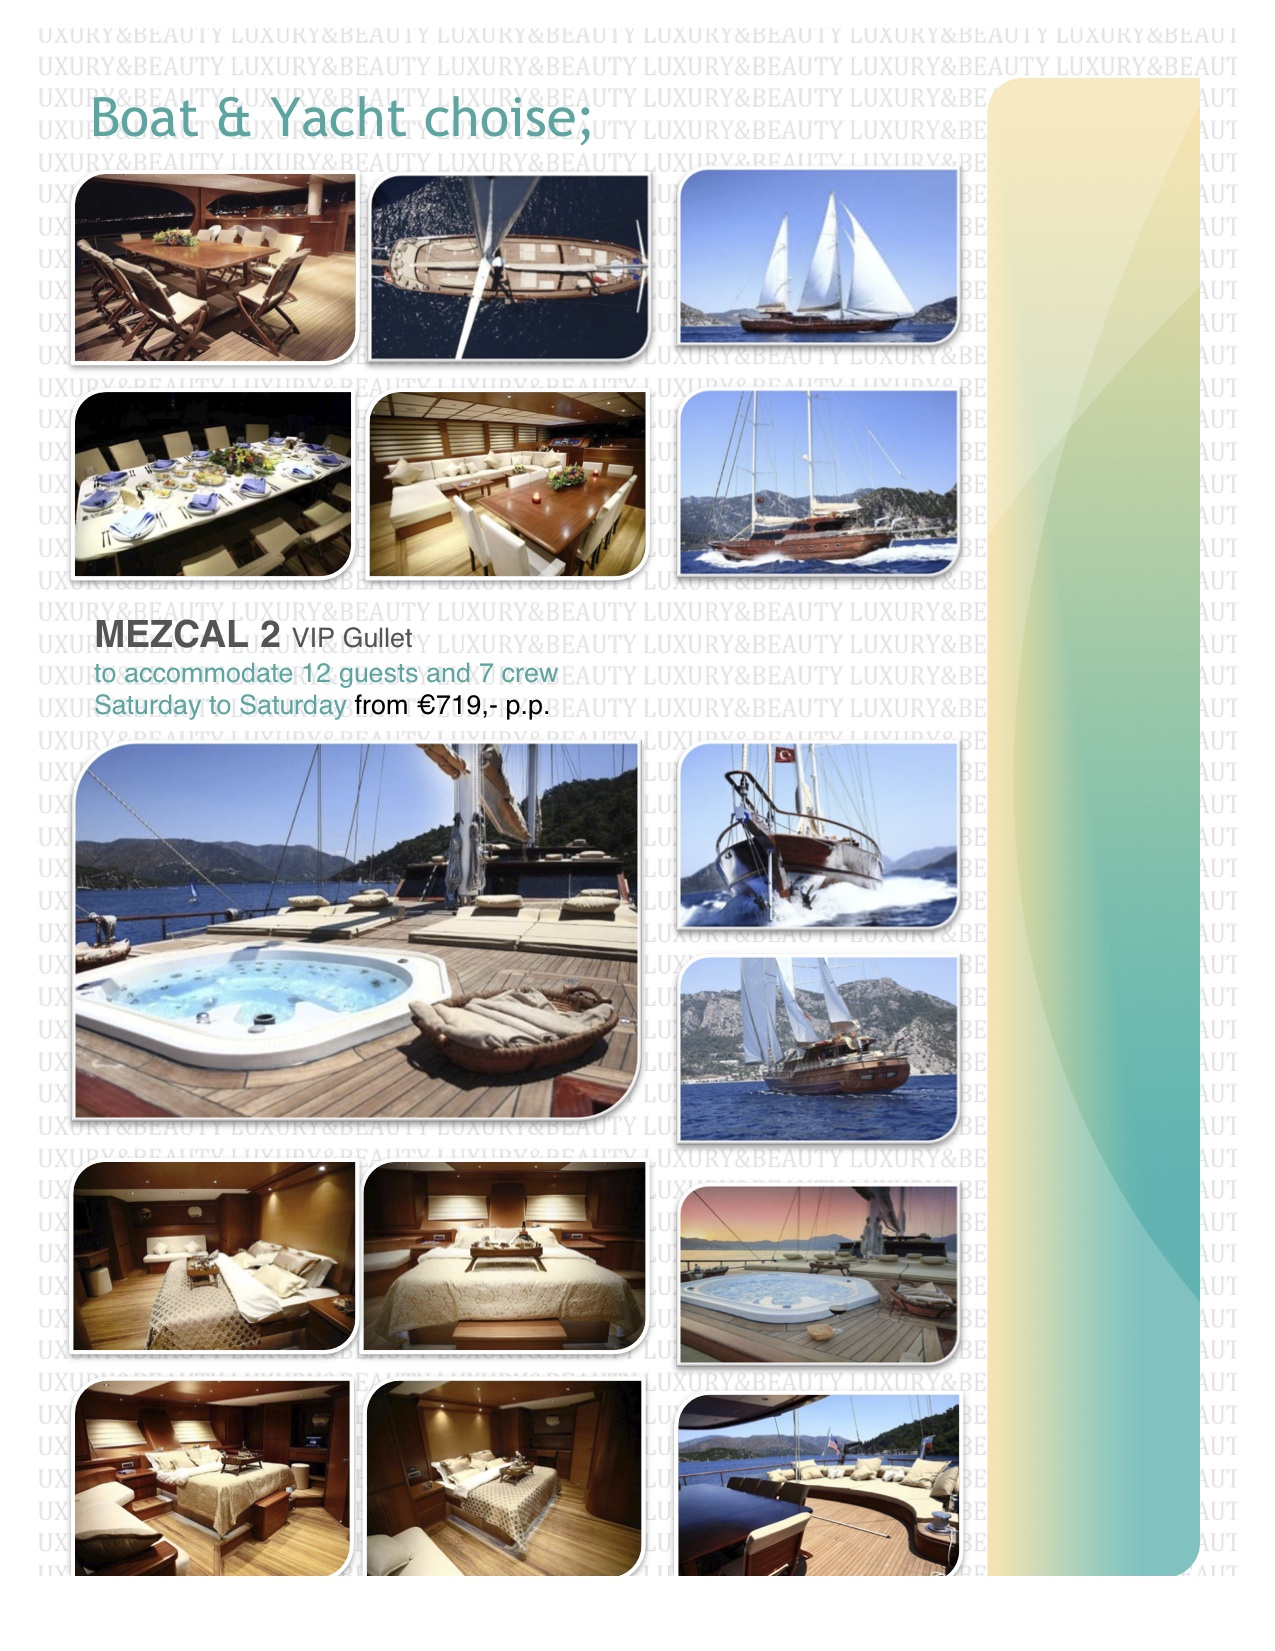 Luxury&Beauty_Yoga_Yacht.jpg11